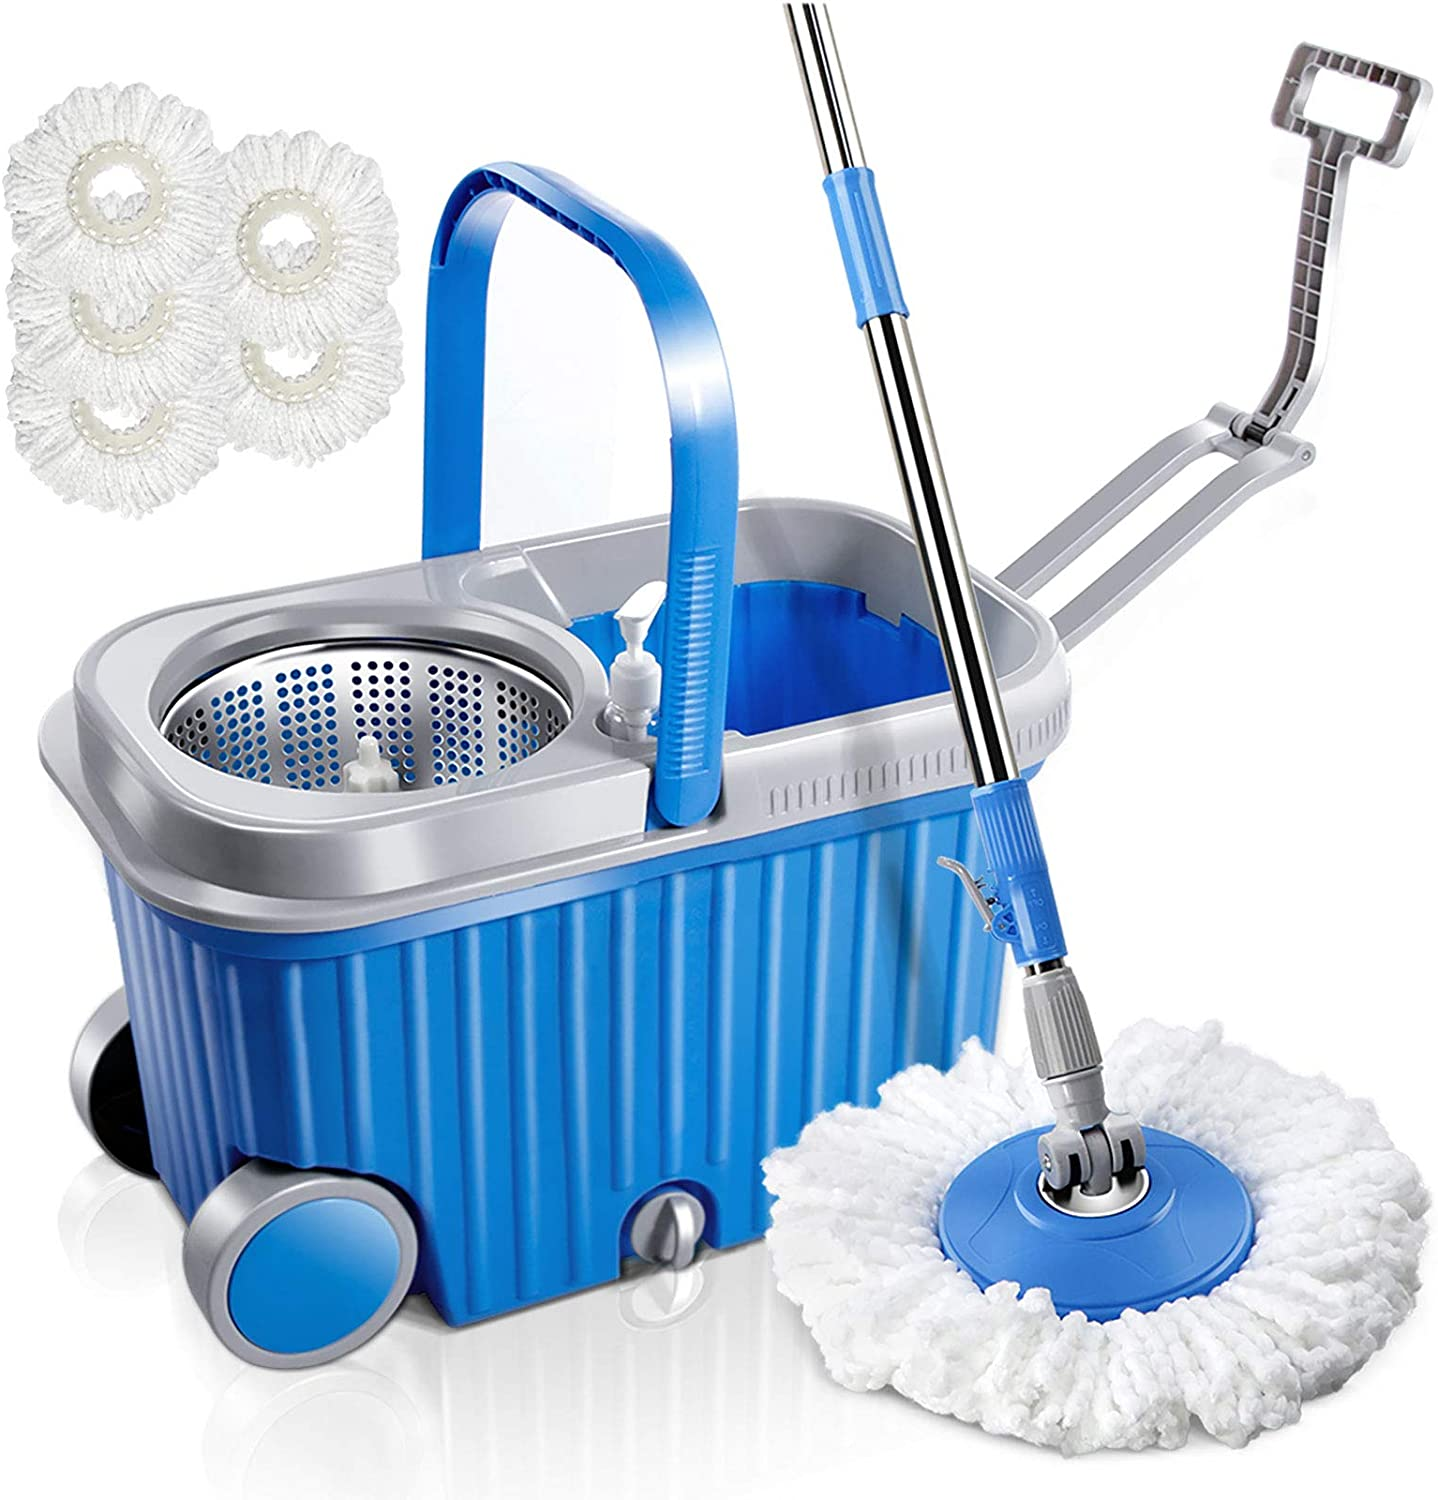 MASTERTOP Spin Mop Bucket with Wringer Set, Floor Cleaning Supplies, Extended Stainless Steel Handle, 5 Microfiber Replacement Mop Head Refills, 2 Wheels for Household Cleaning, Hardwood Floor Tiles: Kitchen & Dining